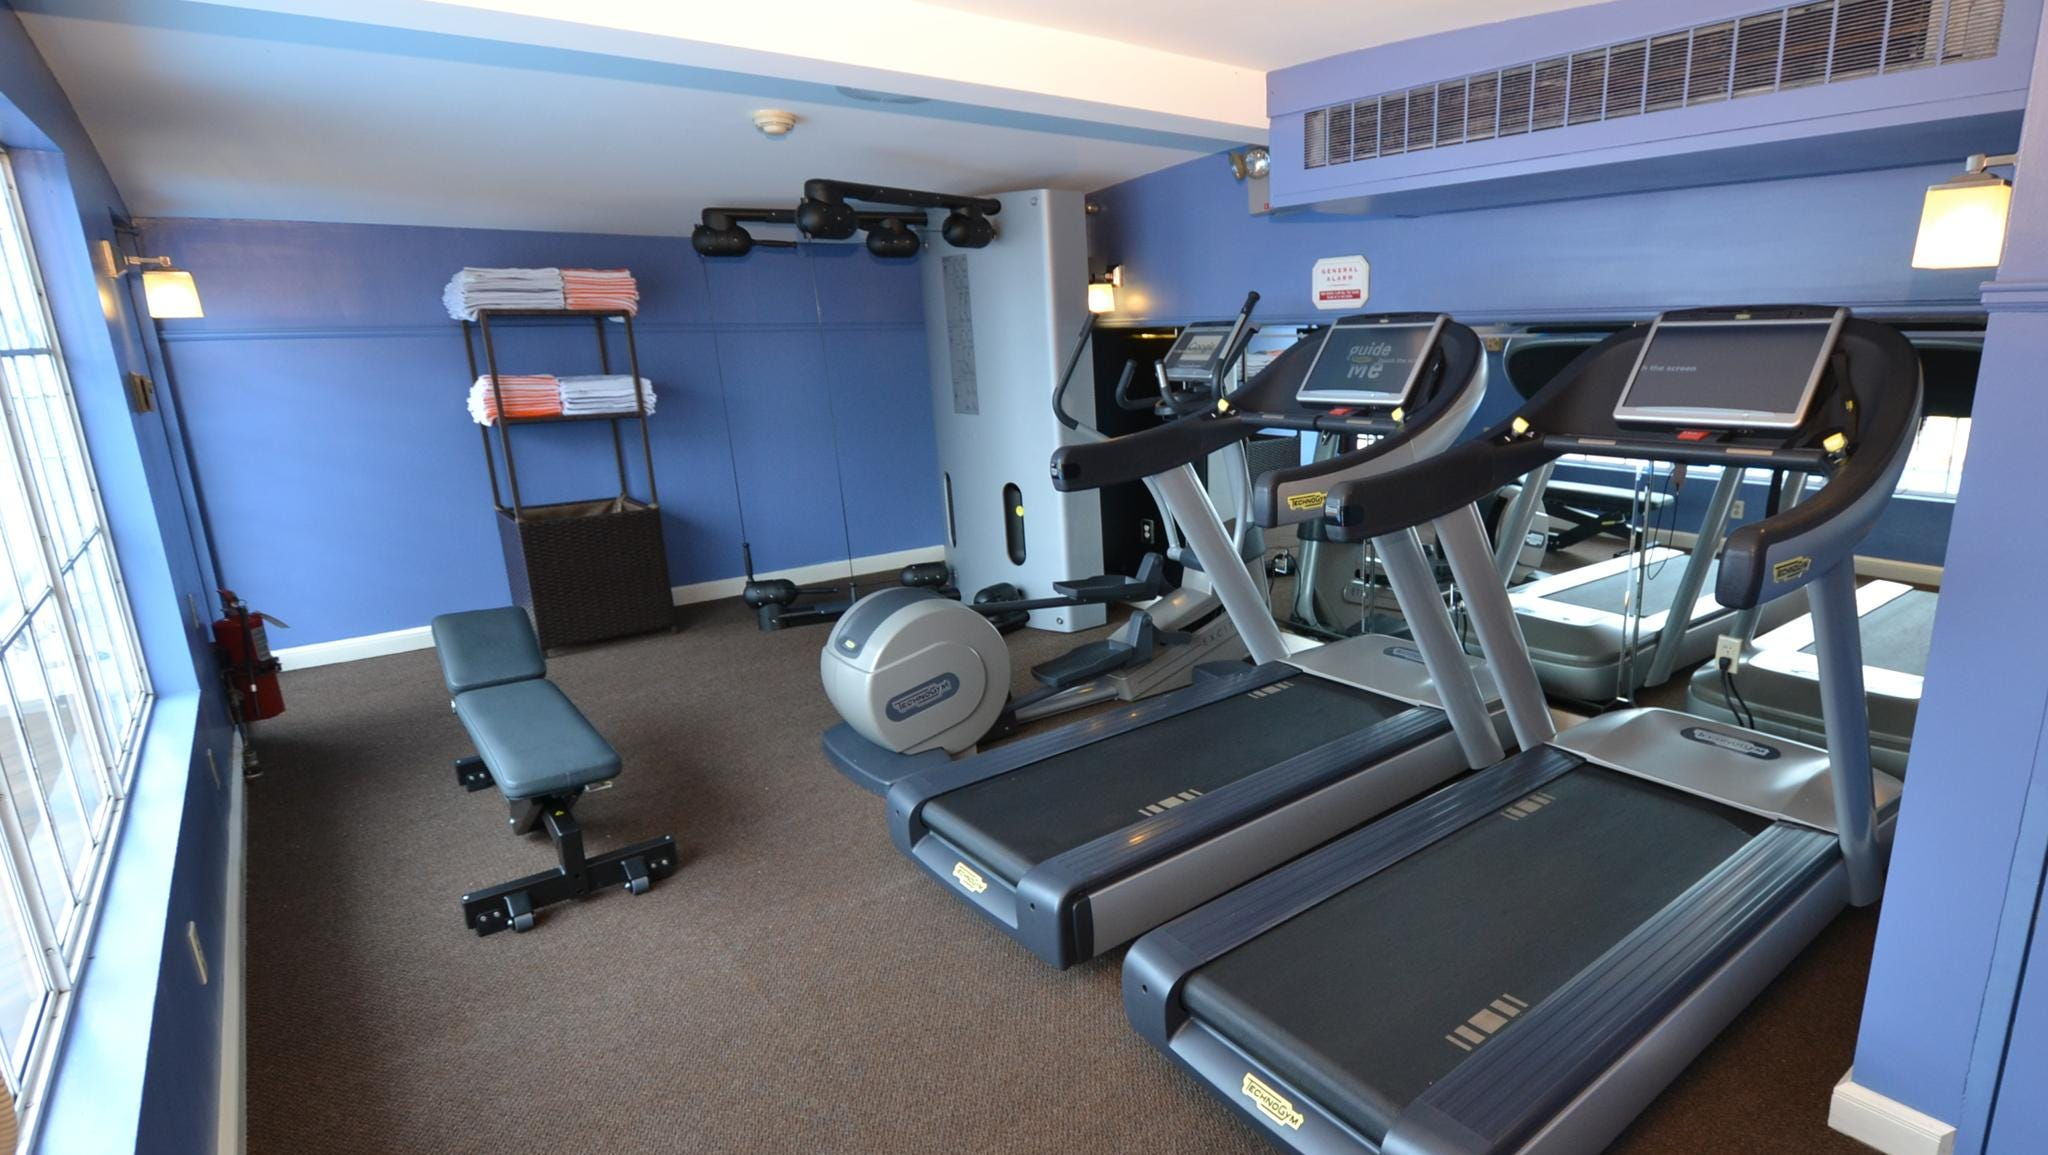 The American Queen has a small Athletic Club with two running machines, a stair climbing machine and a Kinesis machine.